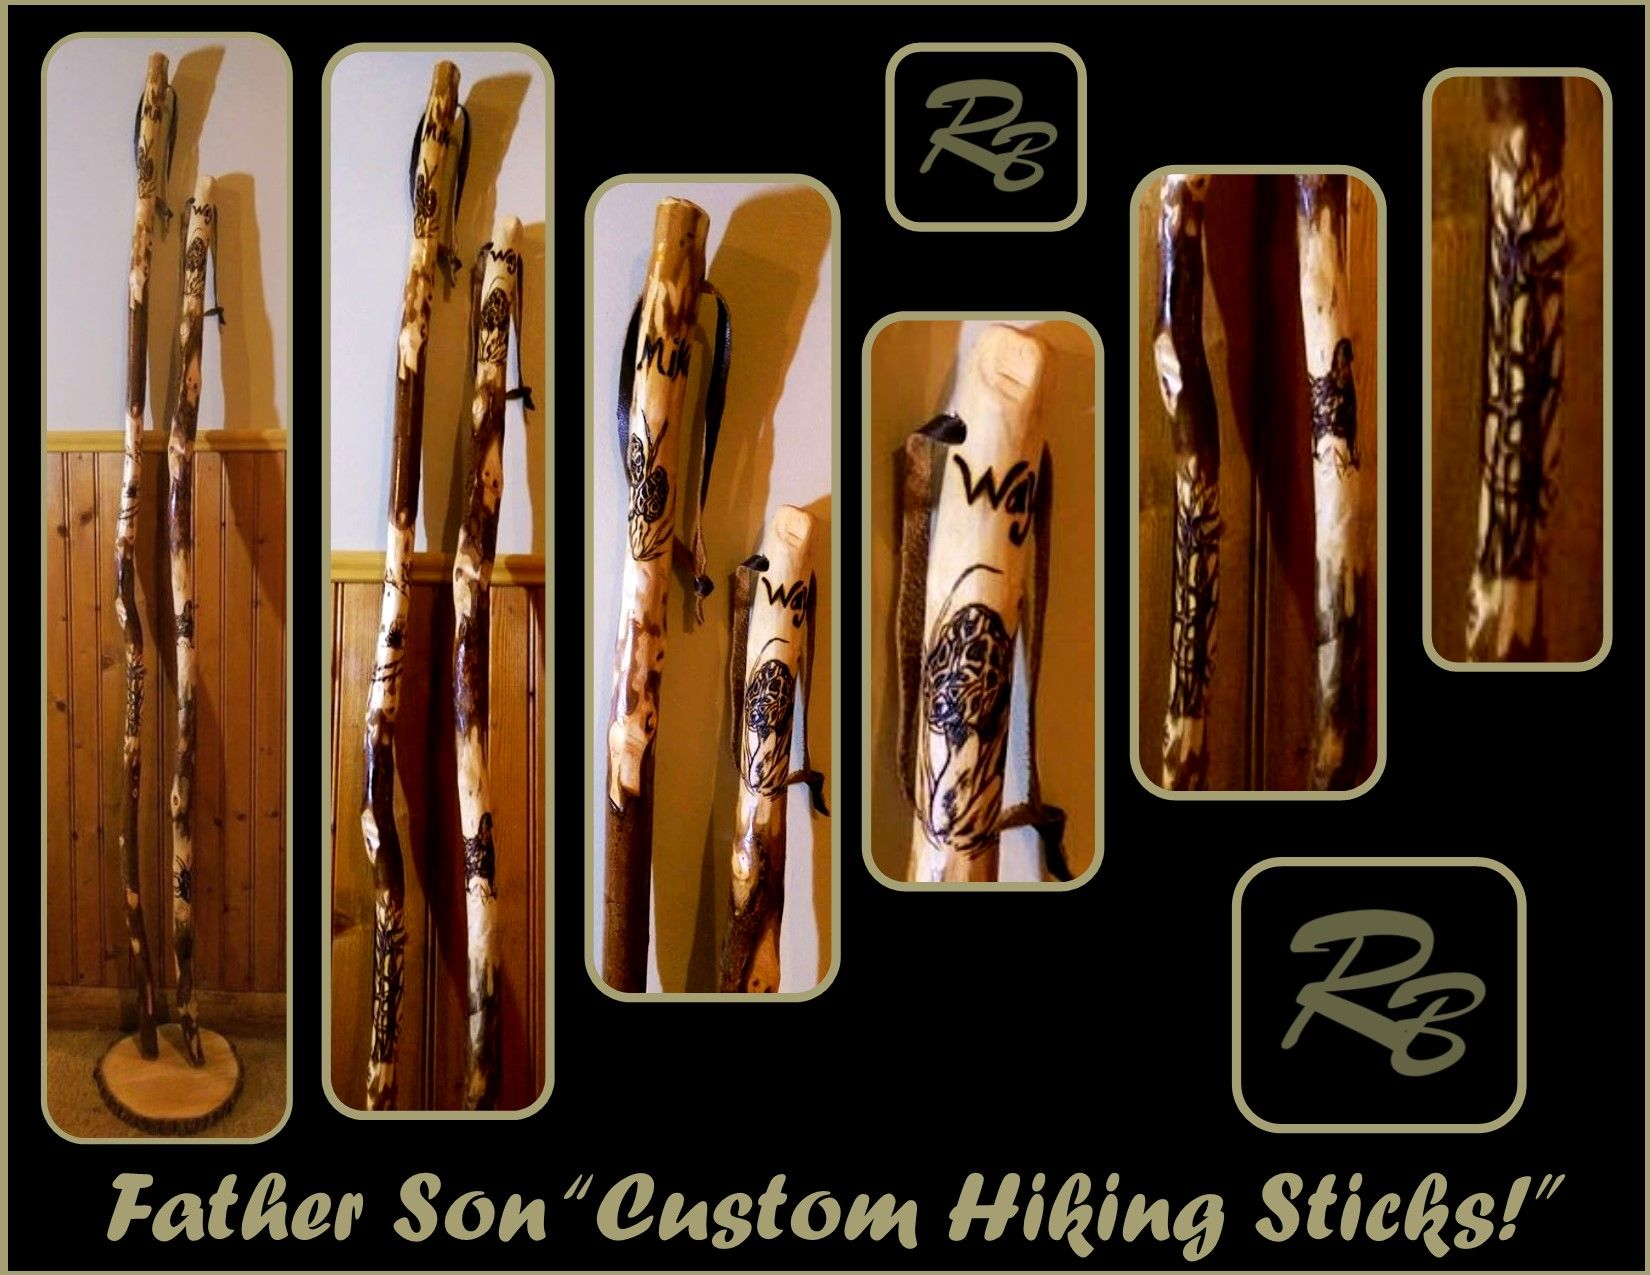 Buy a hand made hiking stickswalking stick made to order from custom made hiking stickswalking stick biocorpaavc Image collections